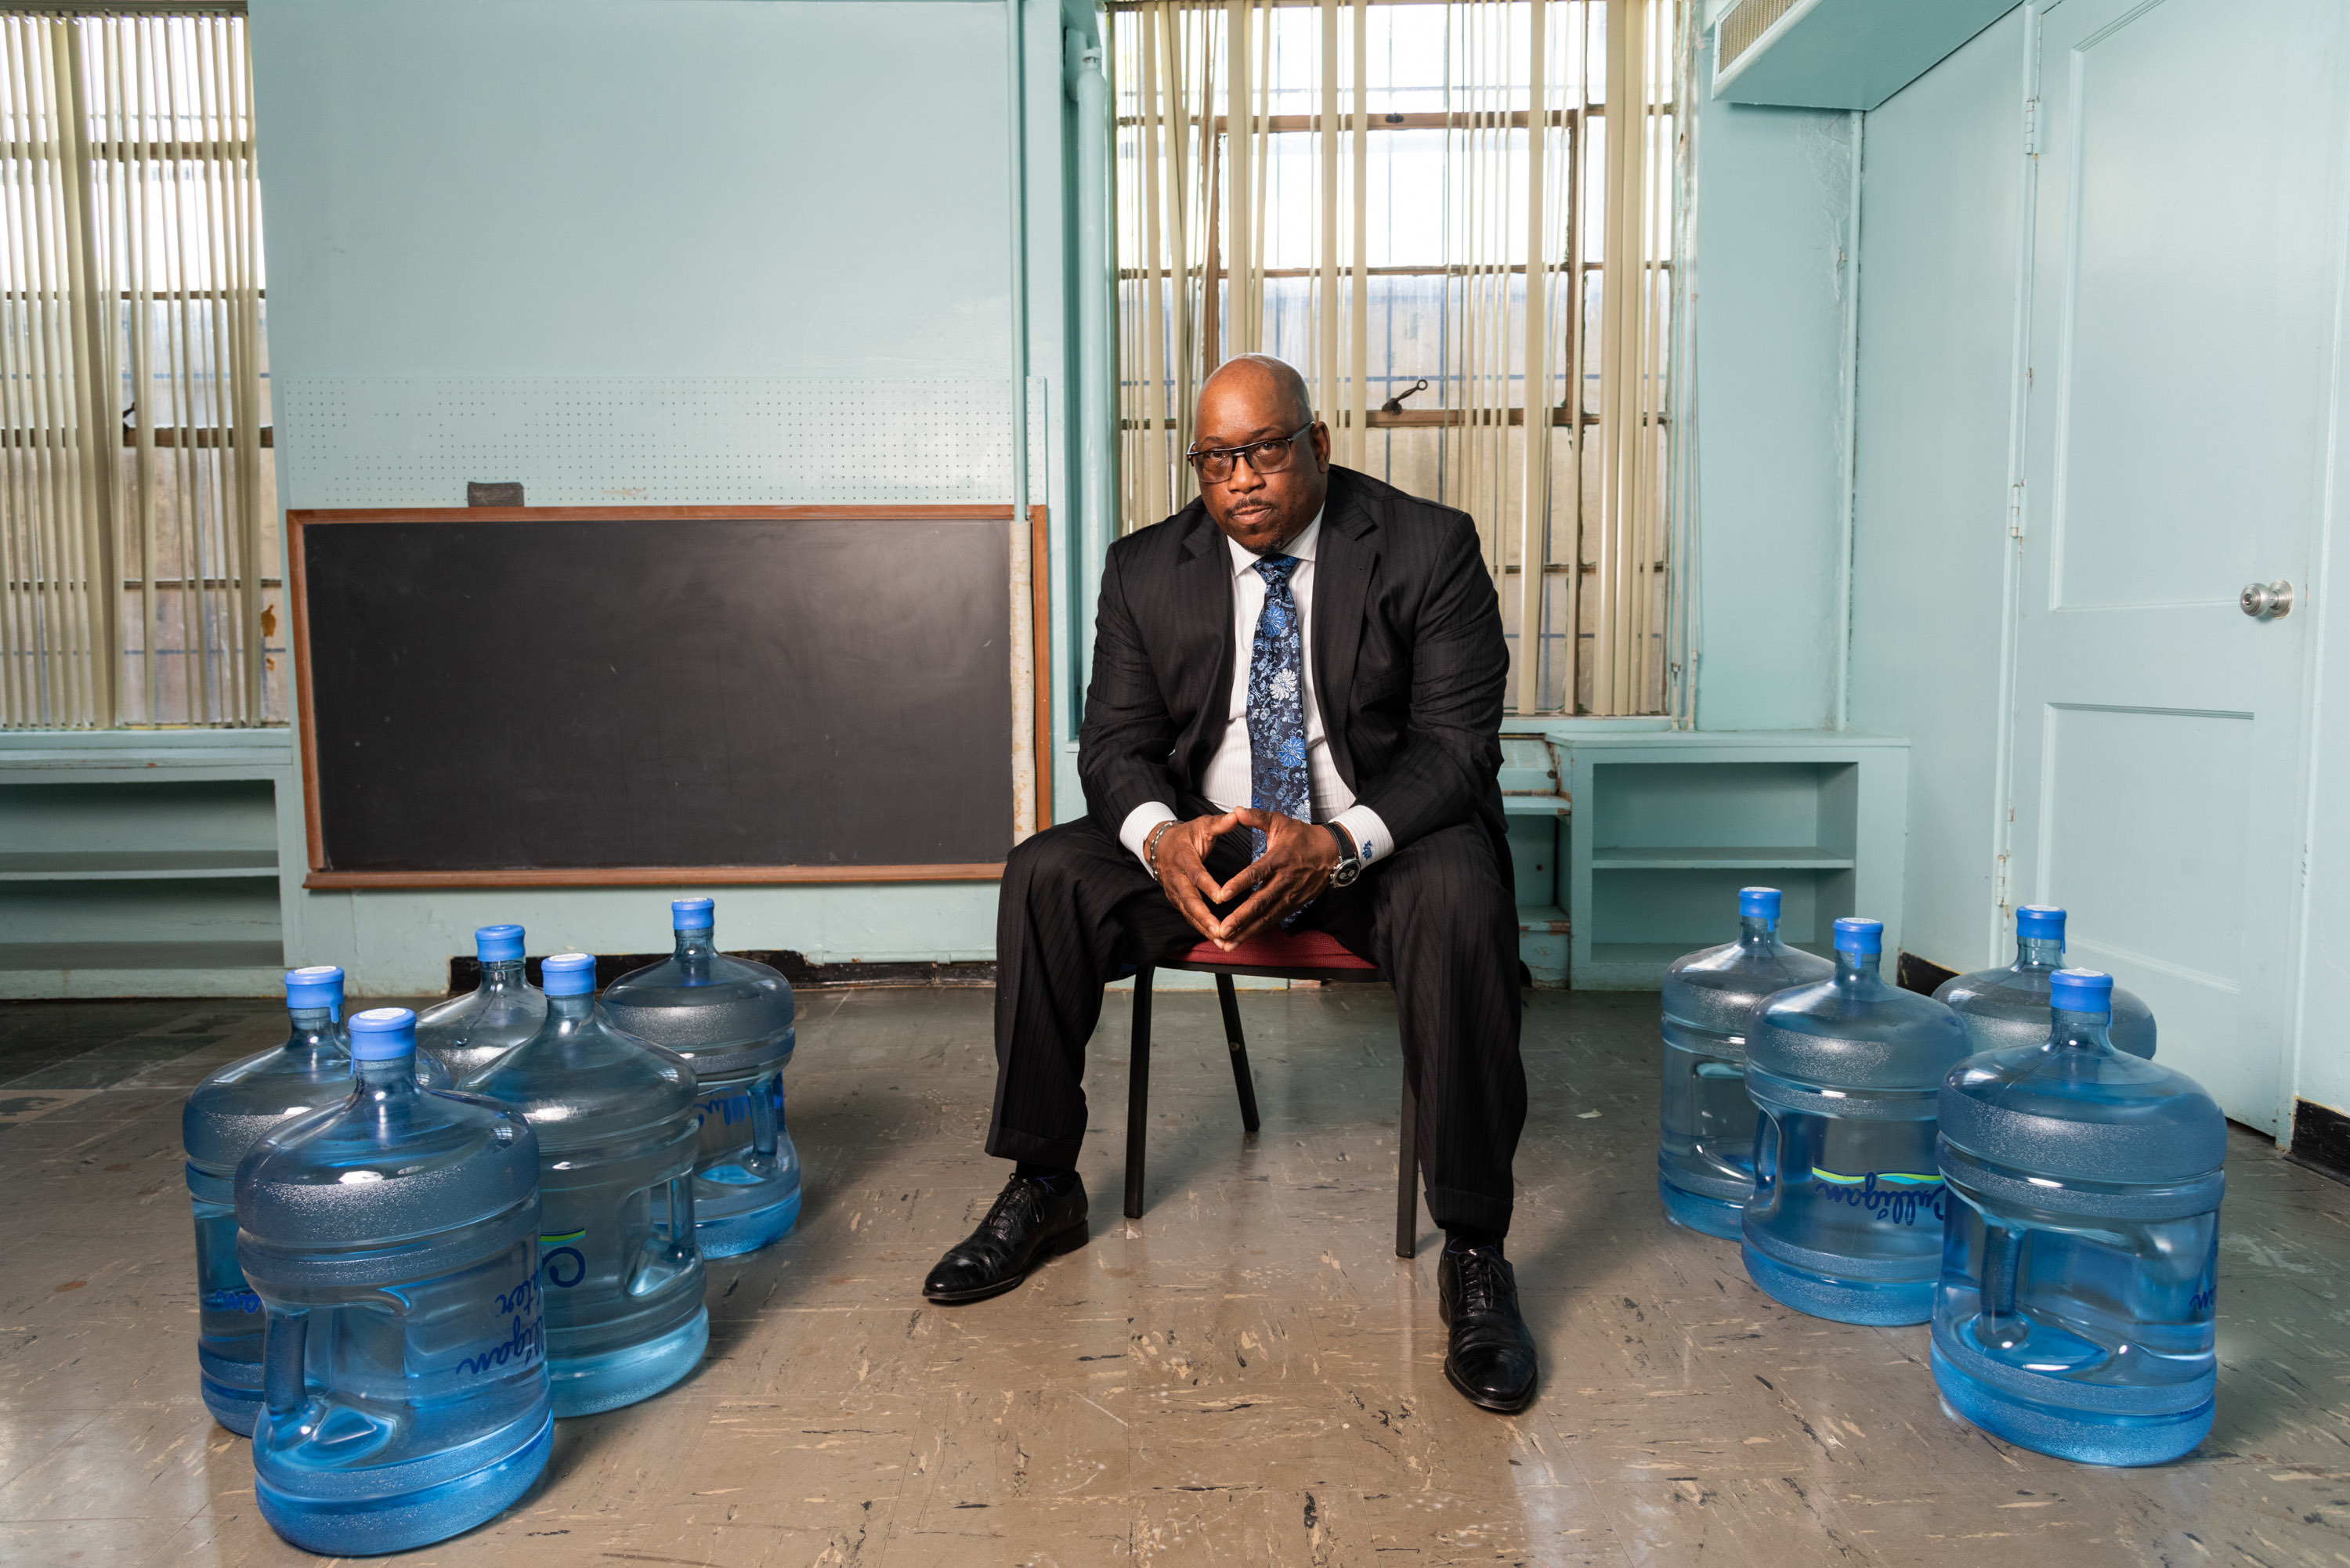 President Biden Wants To Replace All Lead Pipes. Flint Has Lessons To Share